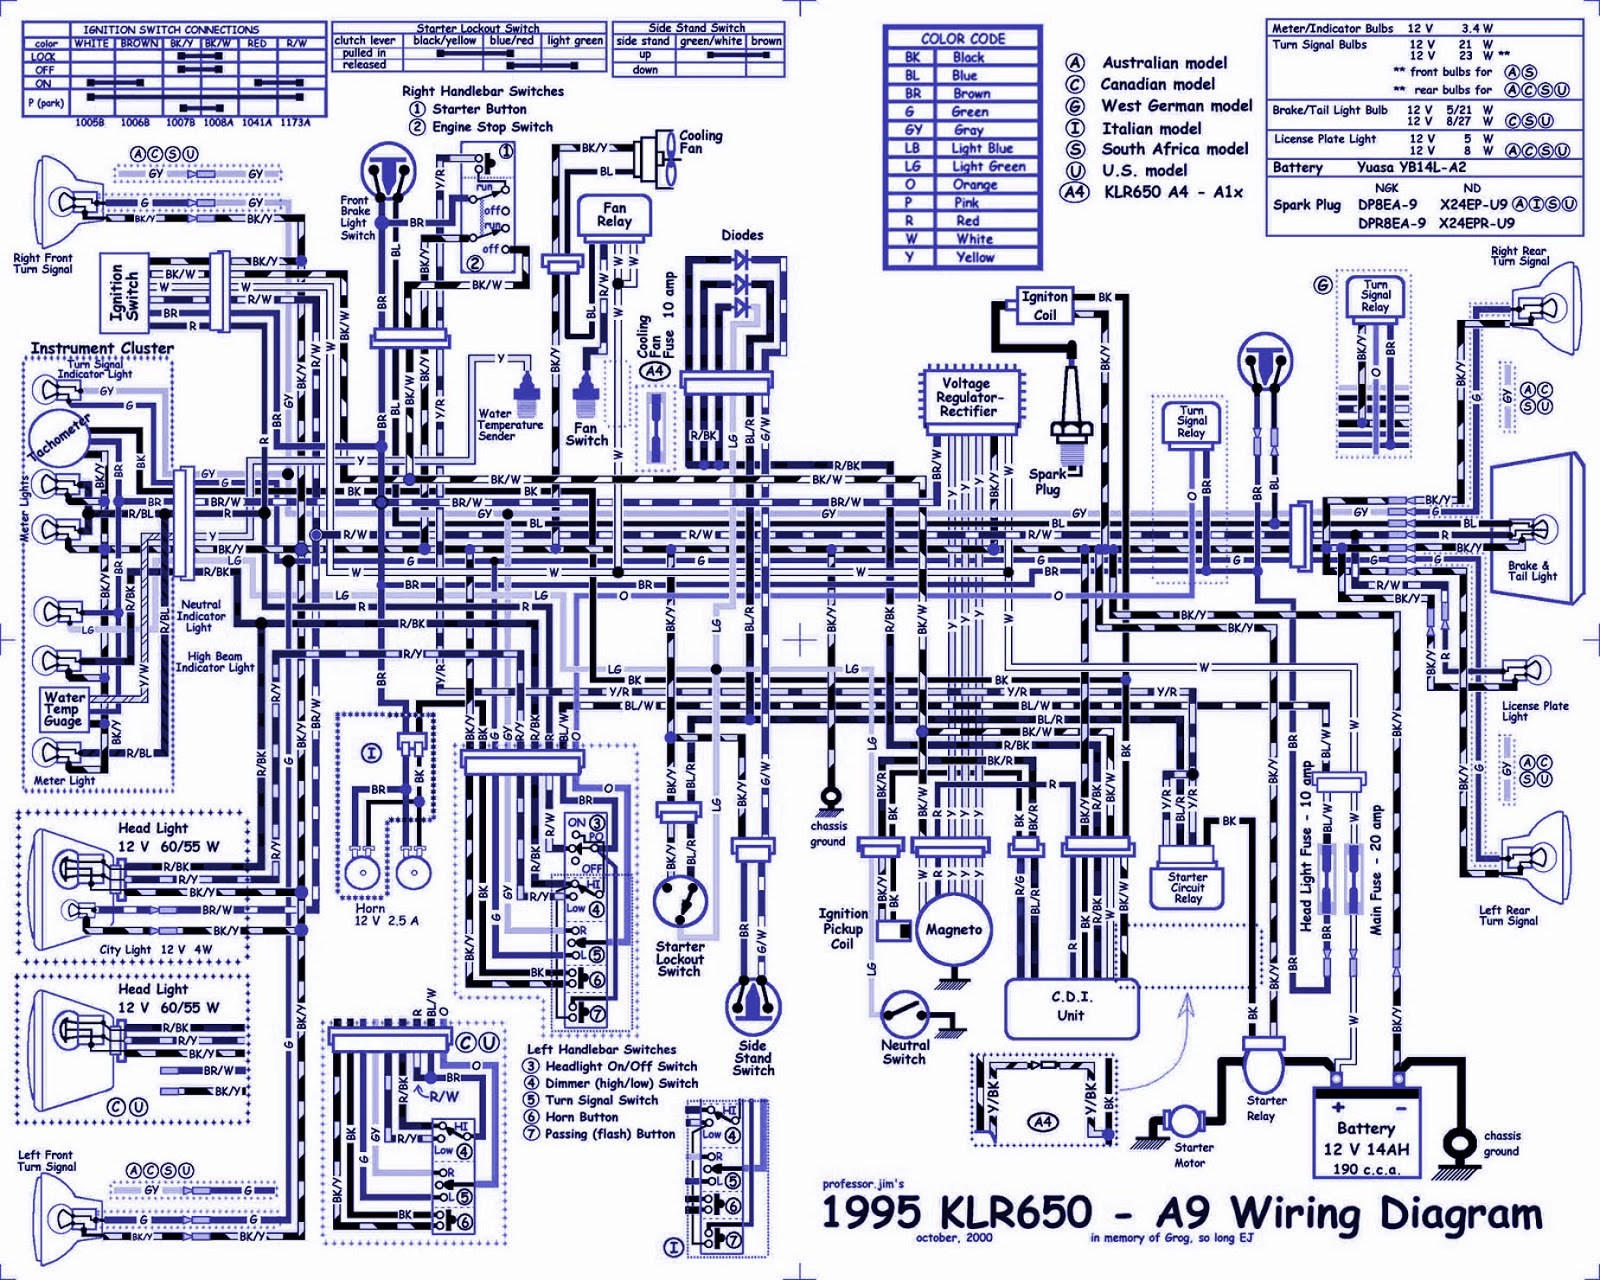 chevy wiring diagrams wiring diagrams chevy truck 1962 the wiring diagram chevy wiring diagrams chevy wiring diagrams for car